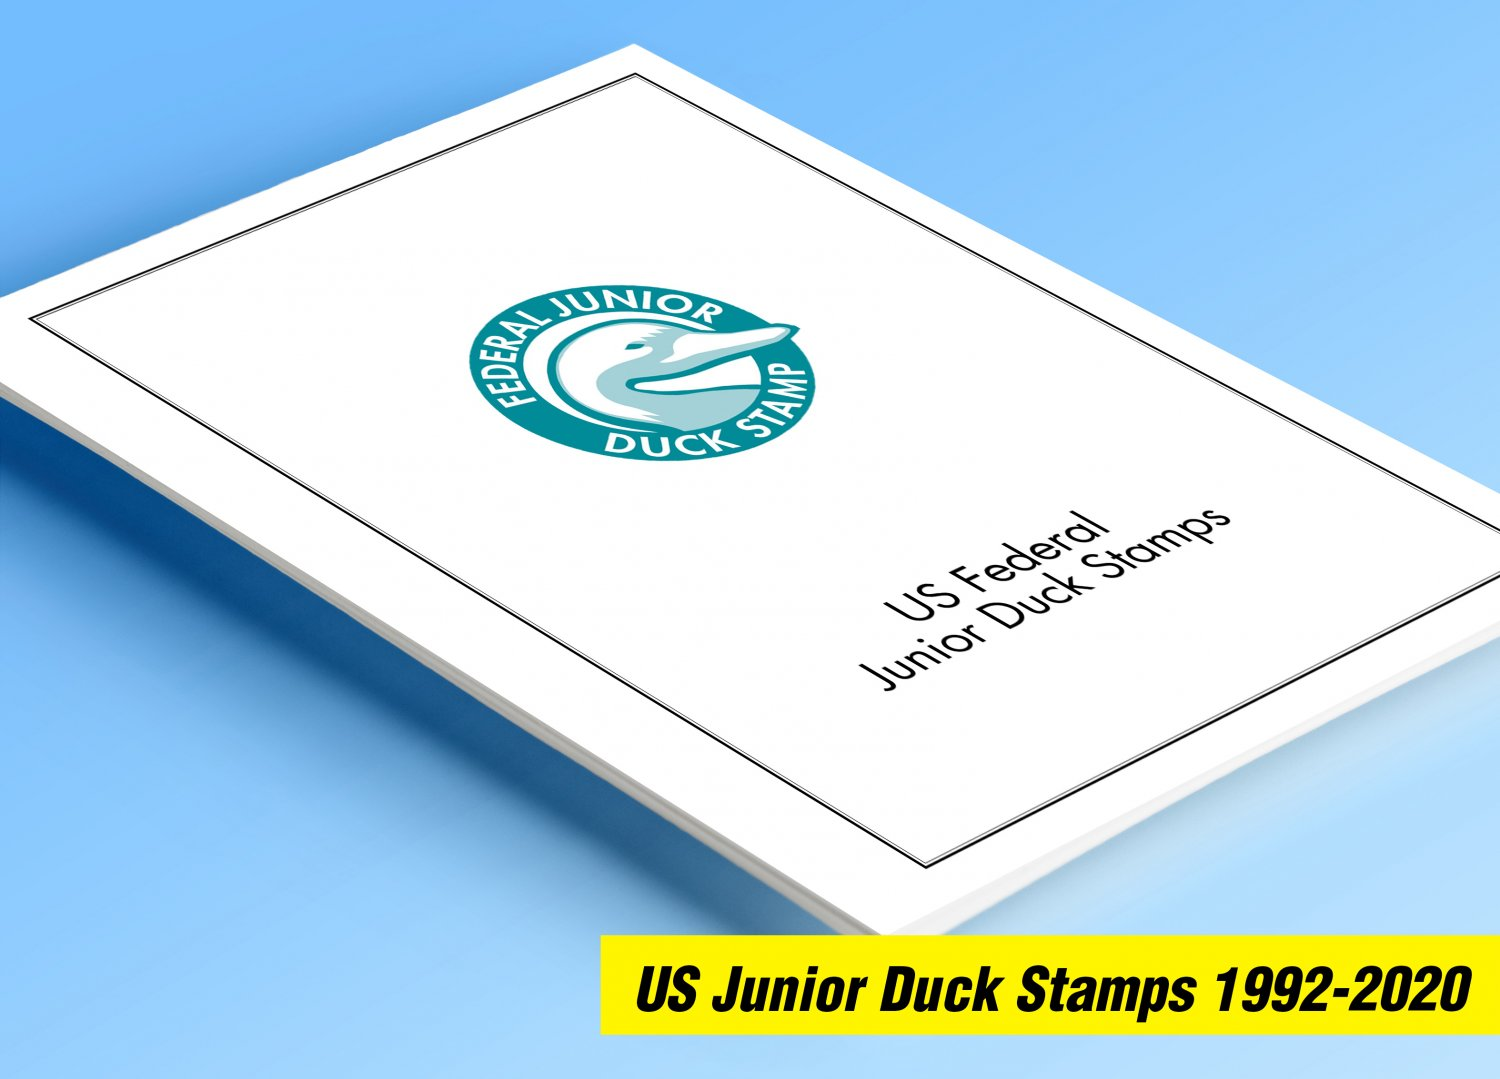 COLOR PRINTED US JUNIOR DUCK STAMPS 1992-2020 STAMP ALBUM PAGES (21 illustrated pages)